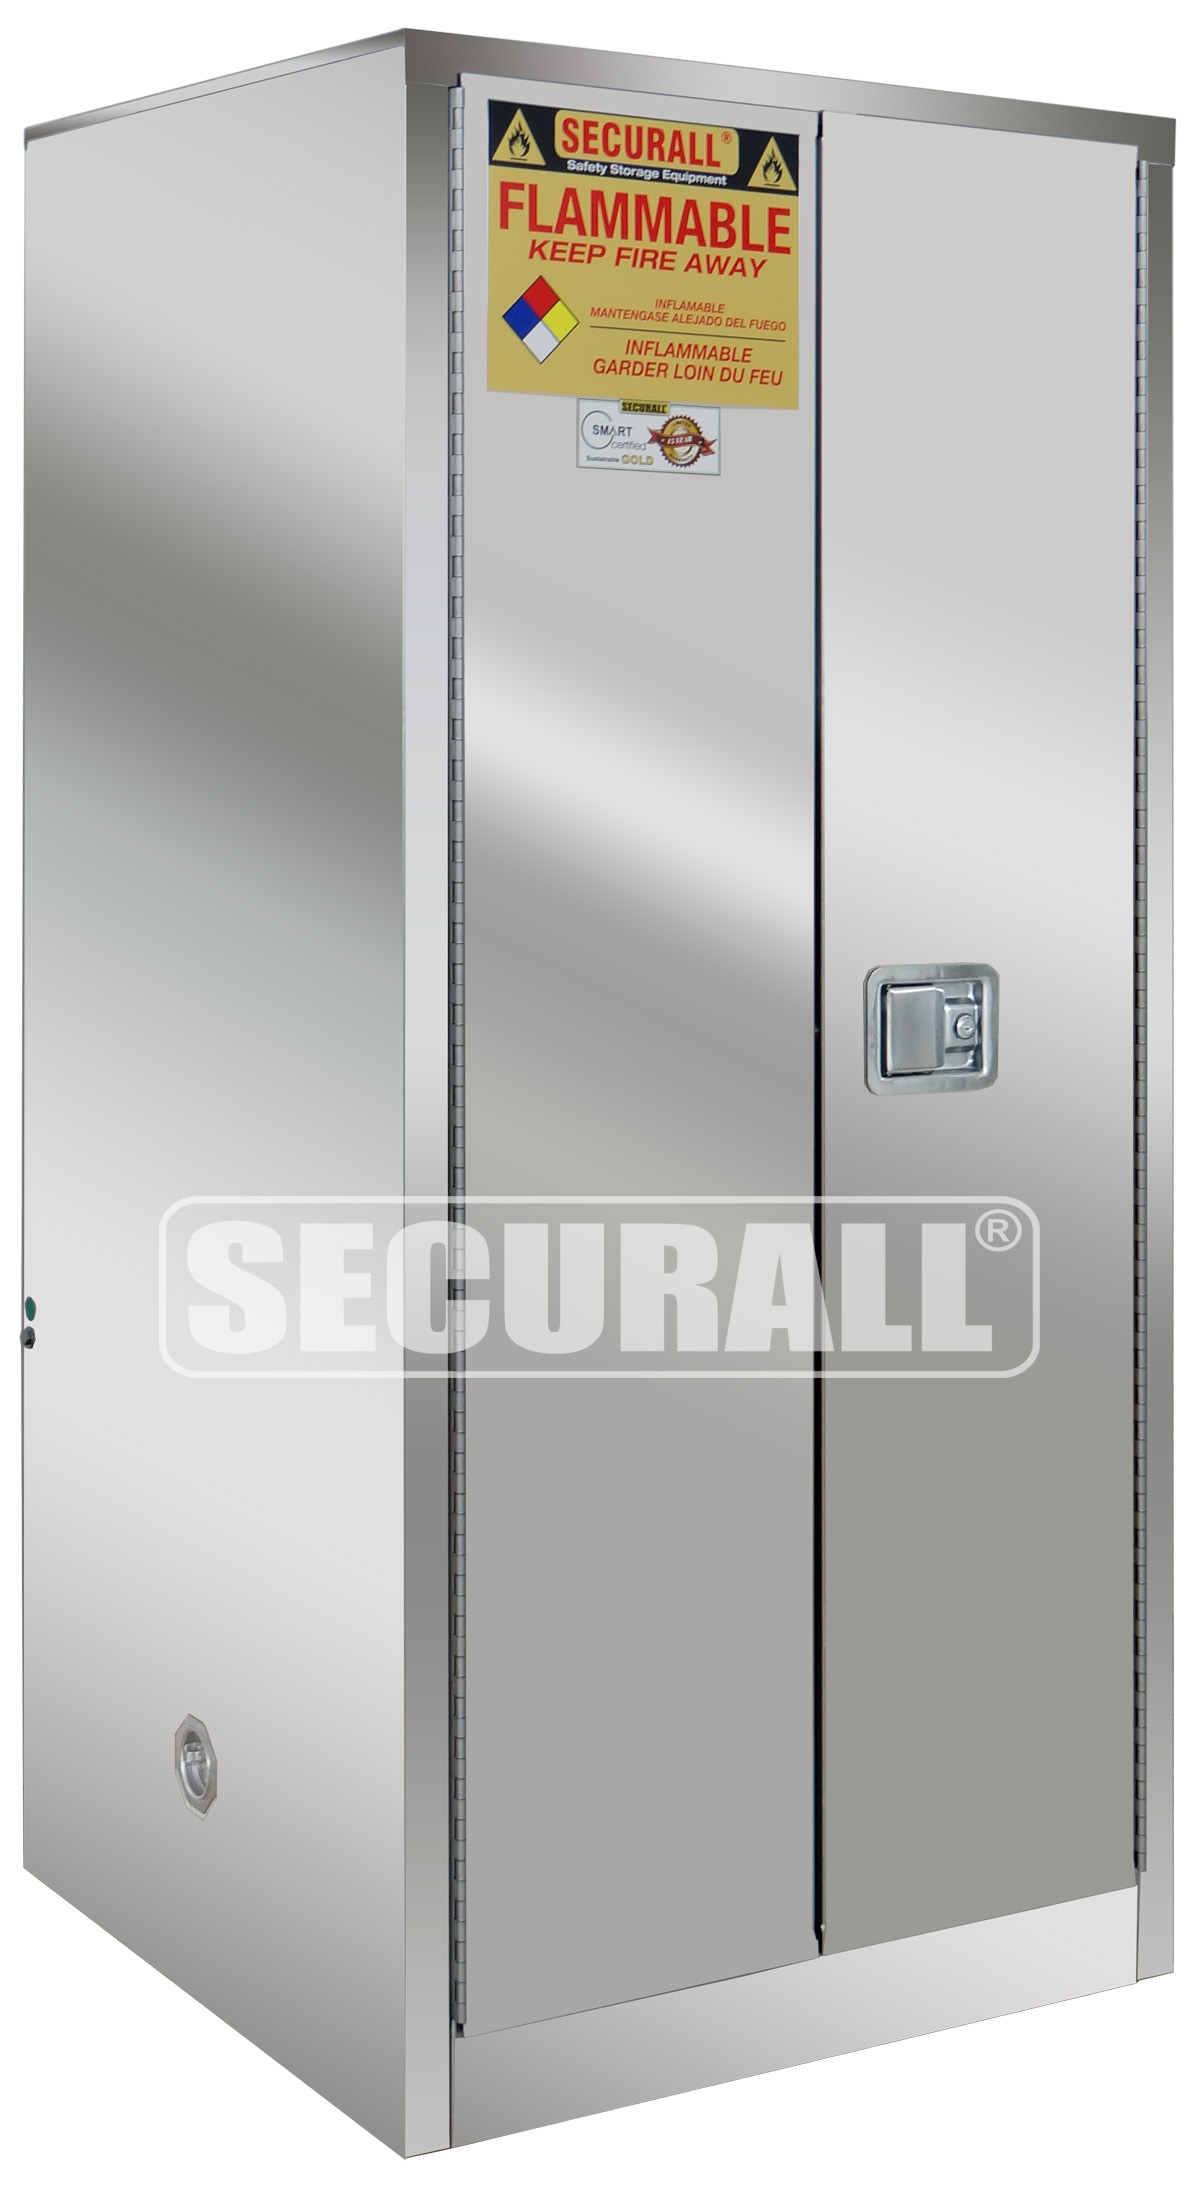 Securall 174 Stainless Steel Storage Cabinets For Flammables